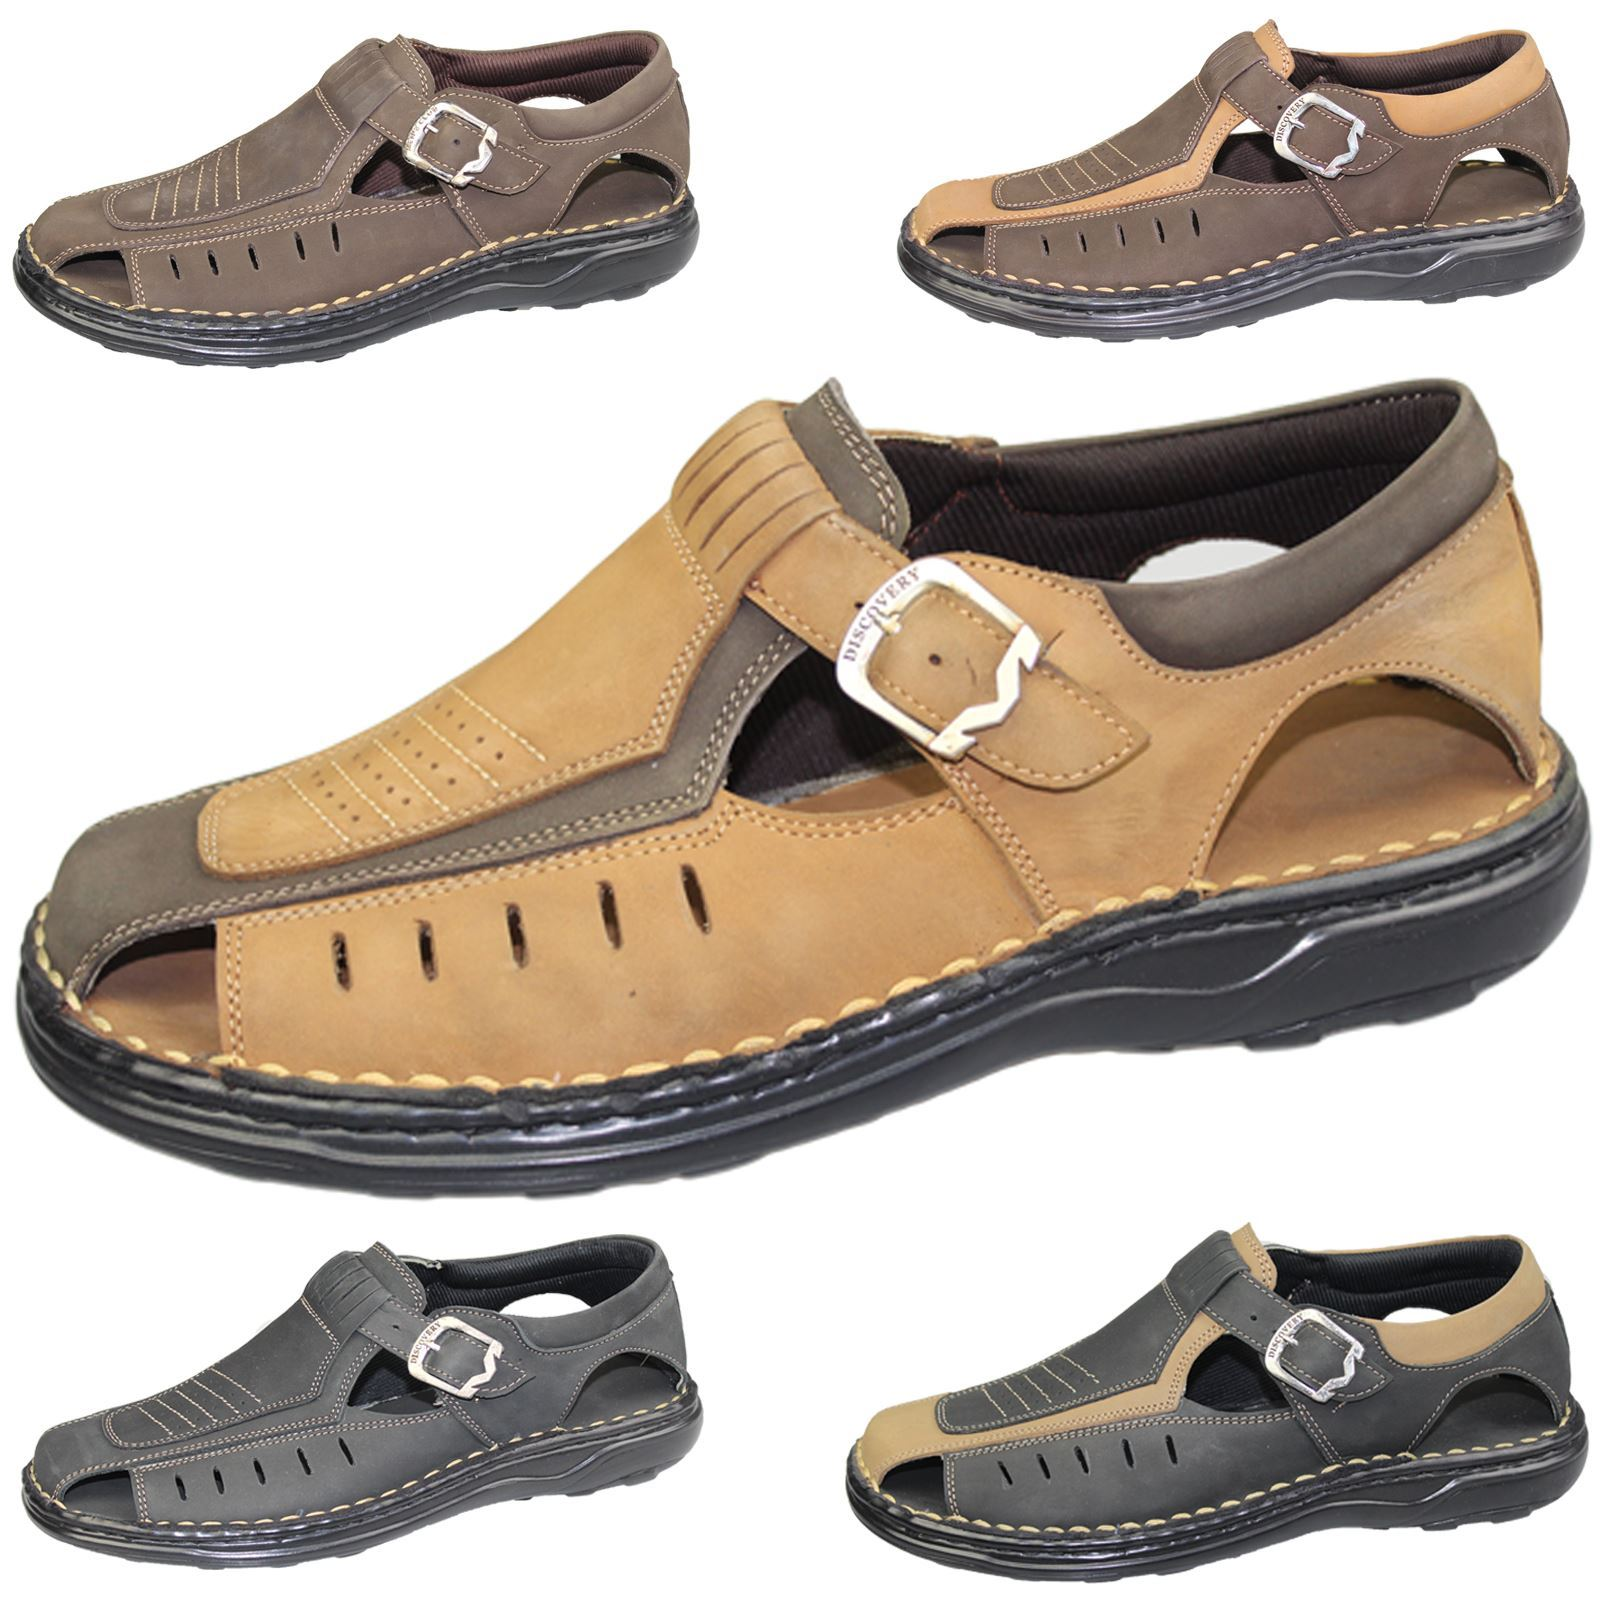 32700bb0126 Details about Mens Buckle Sandals Walking Fashion Casual Summer Beach  Leather Wide Fit Shoes